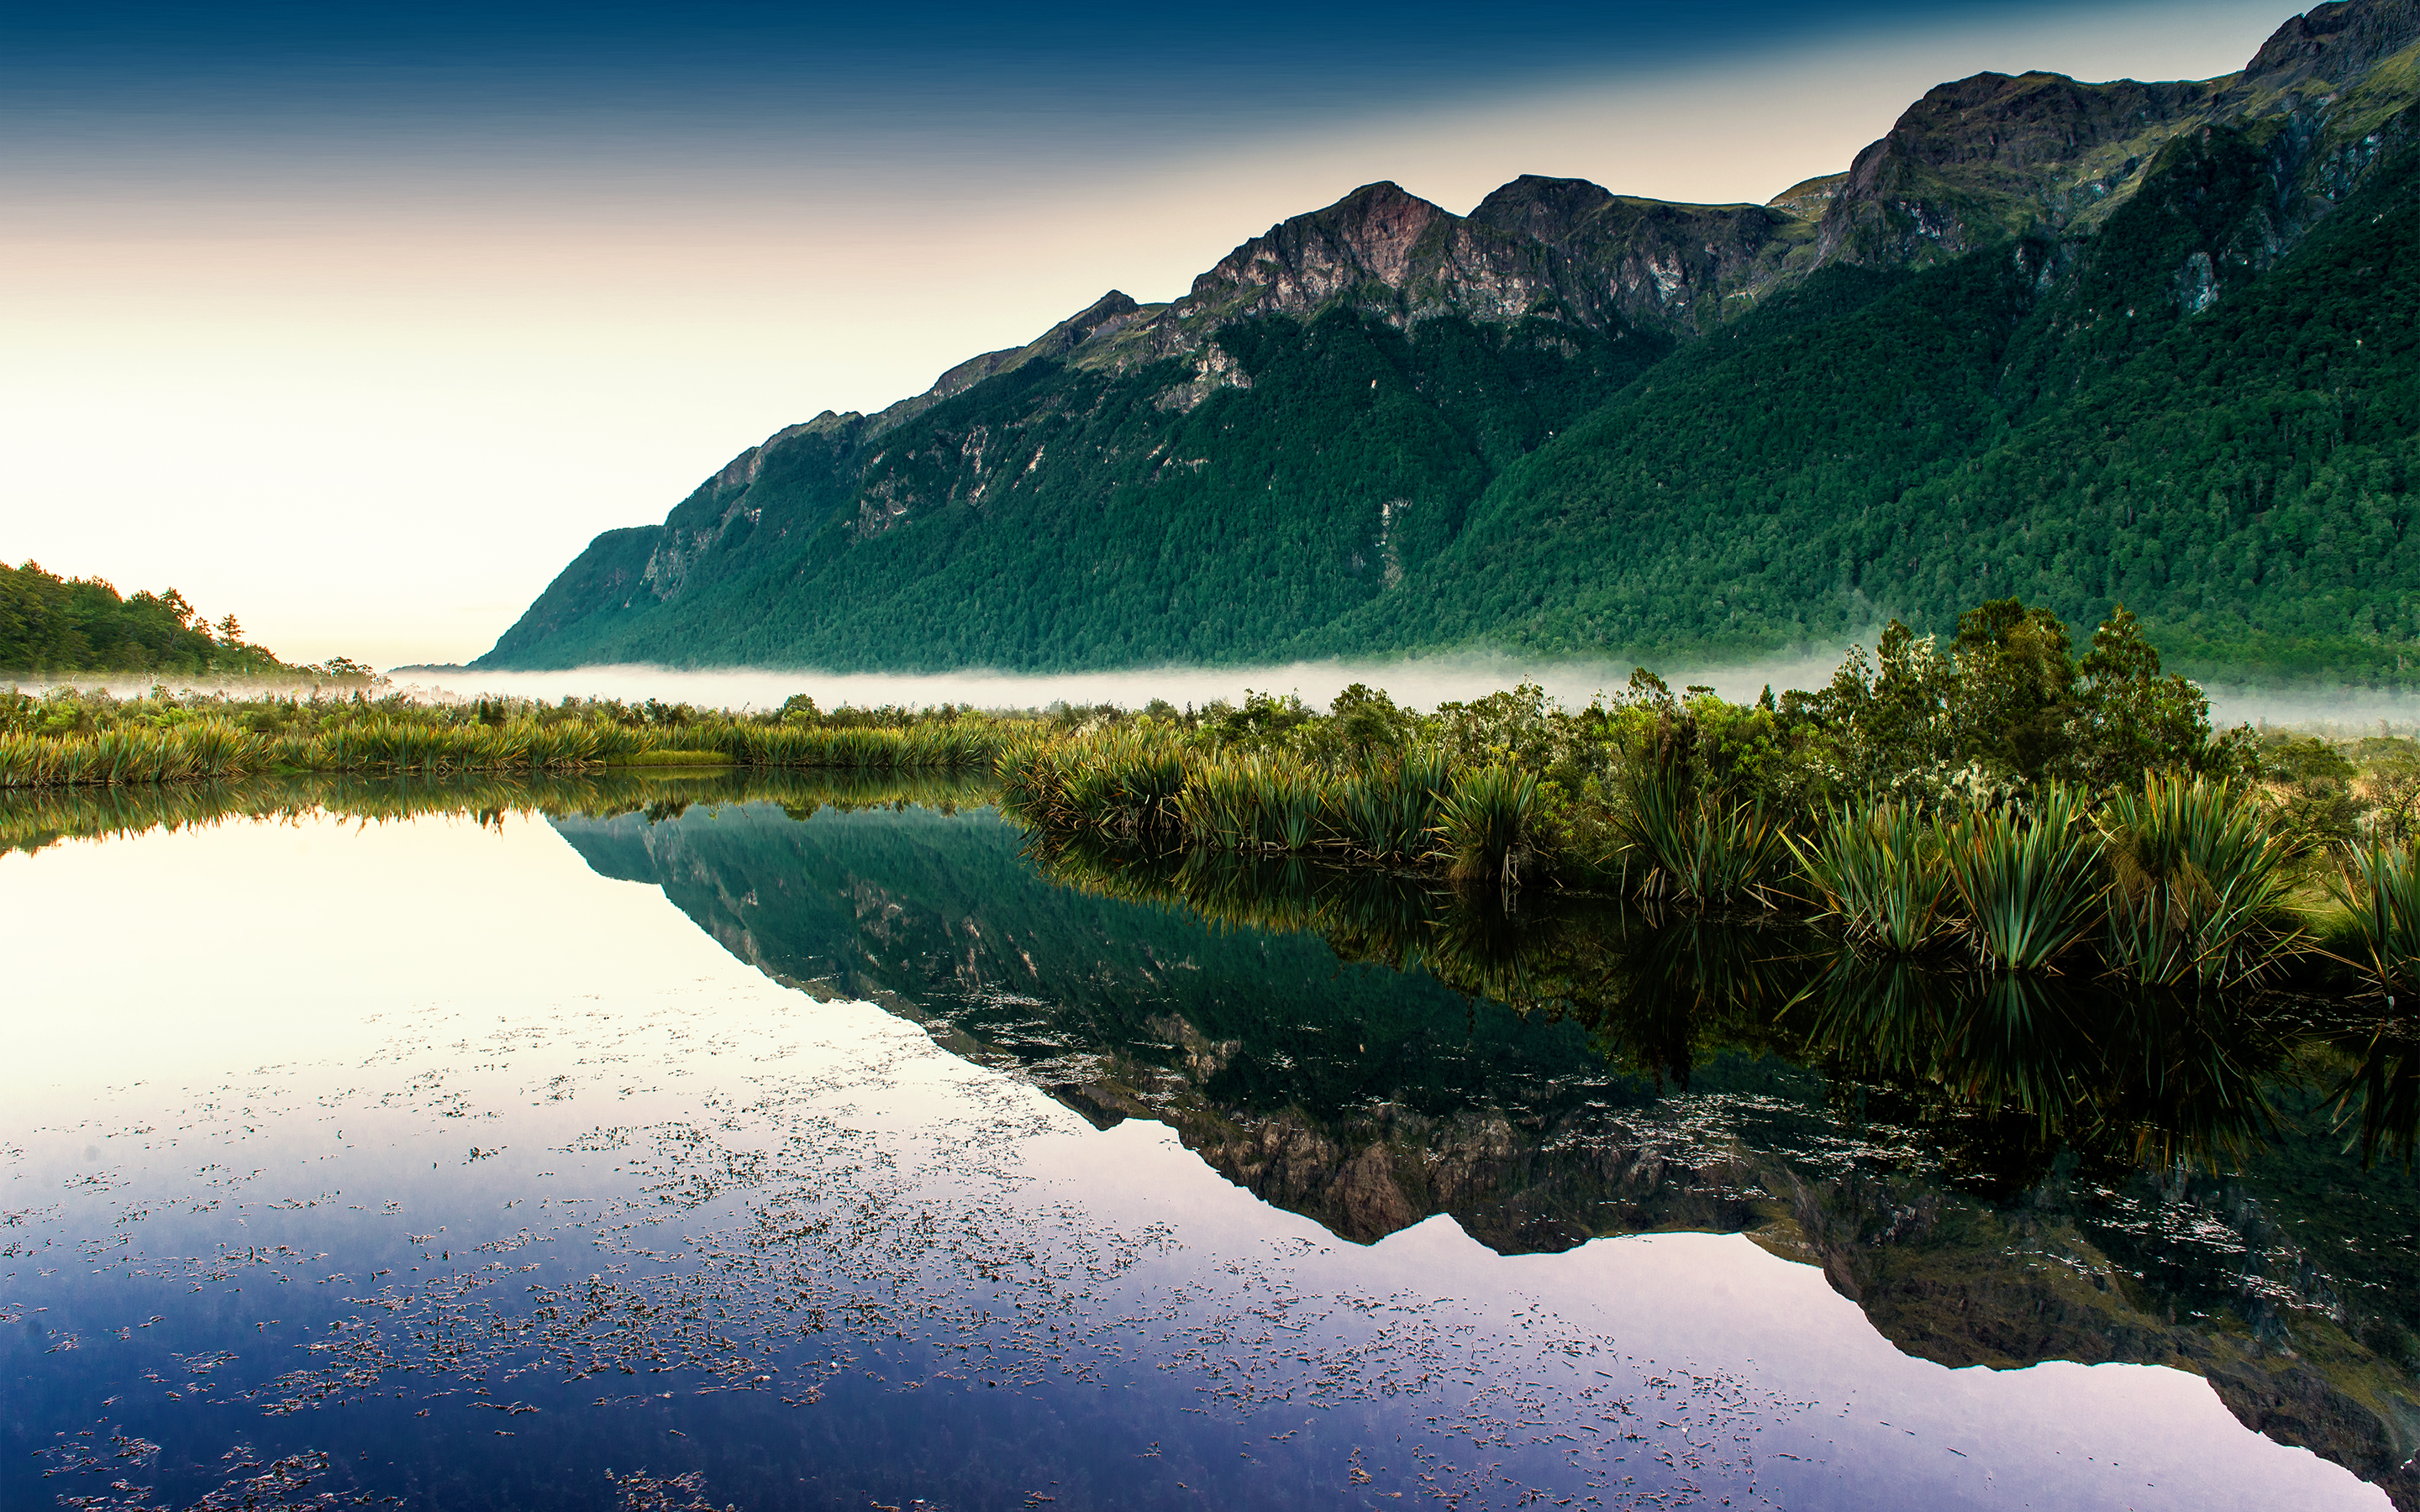 HD Wallpapers Mirror Lakes Sunlight